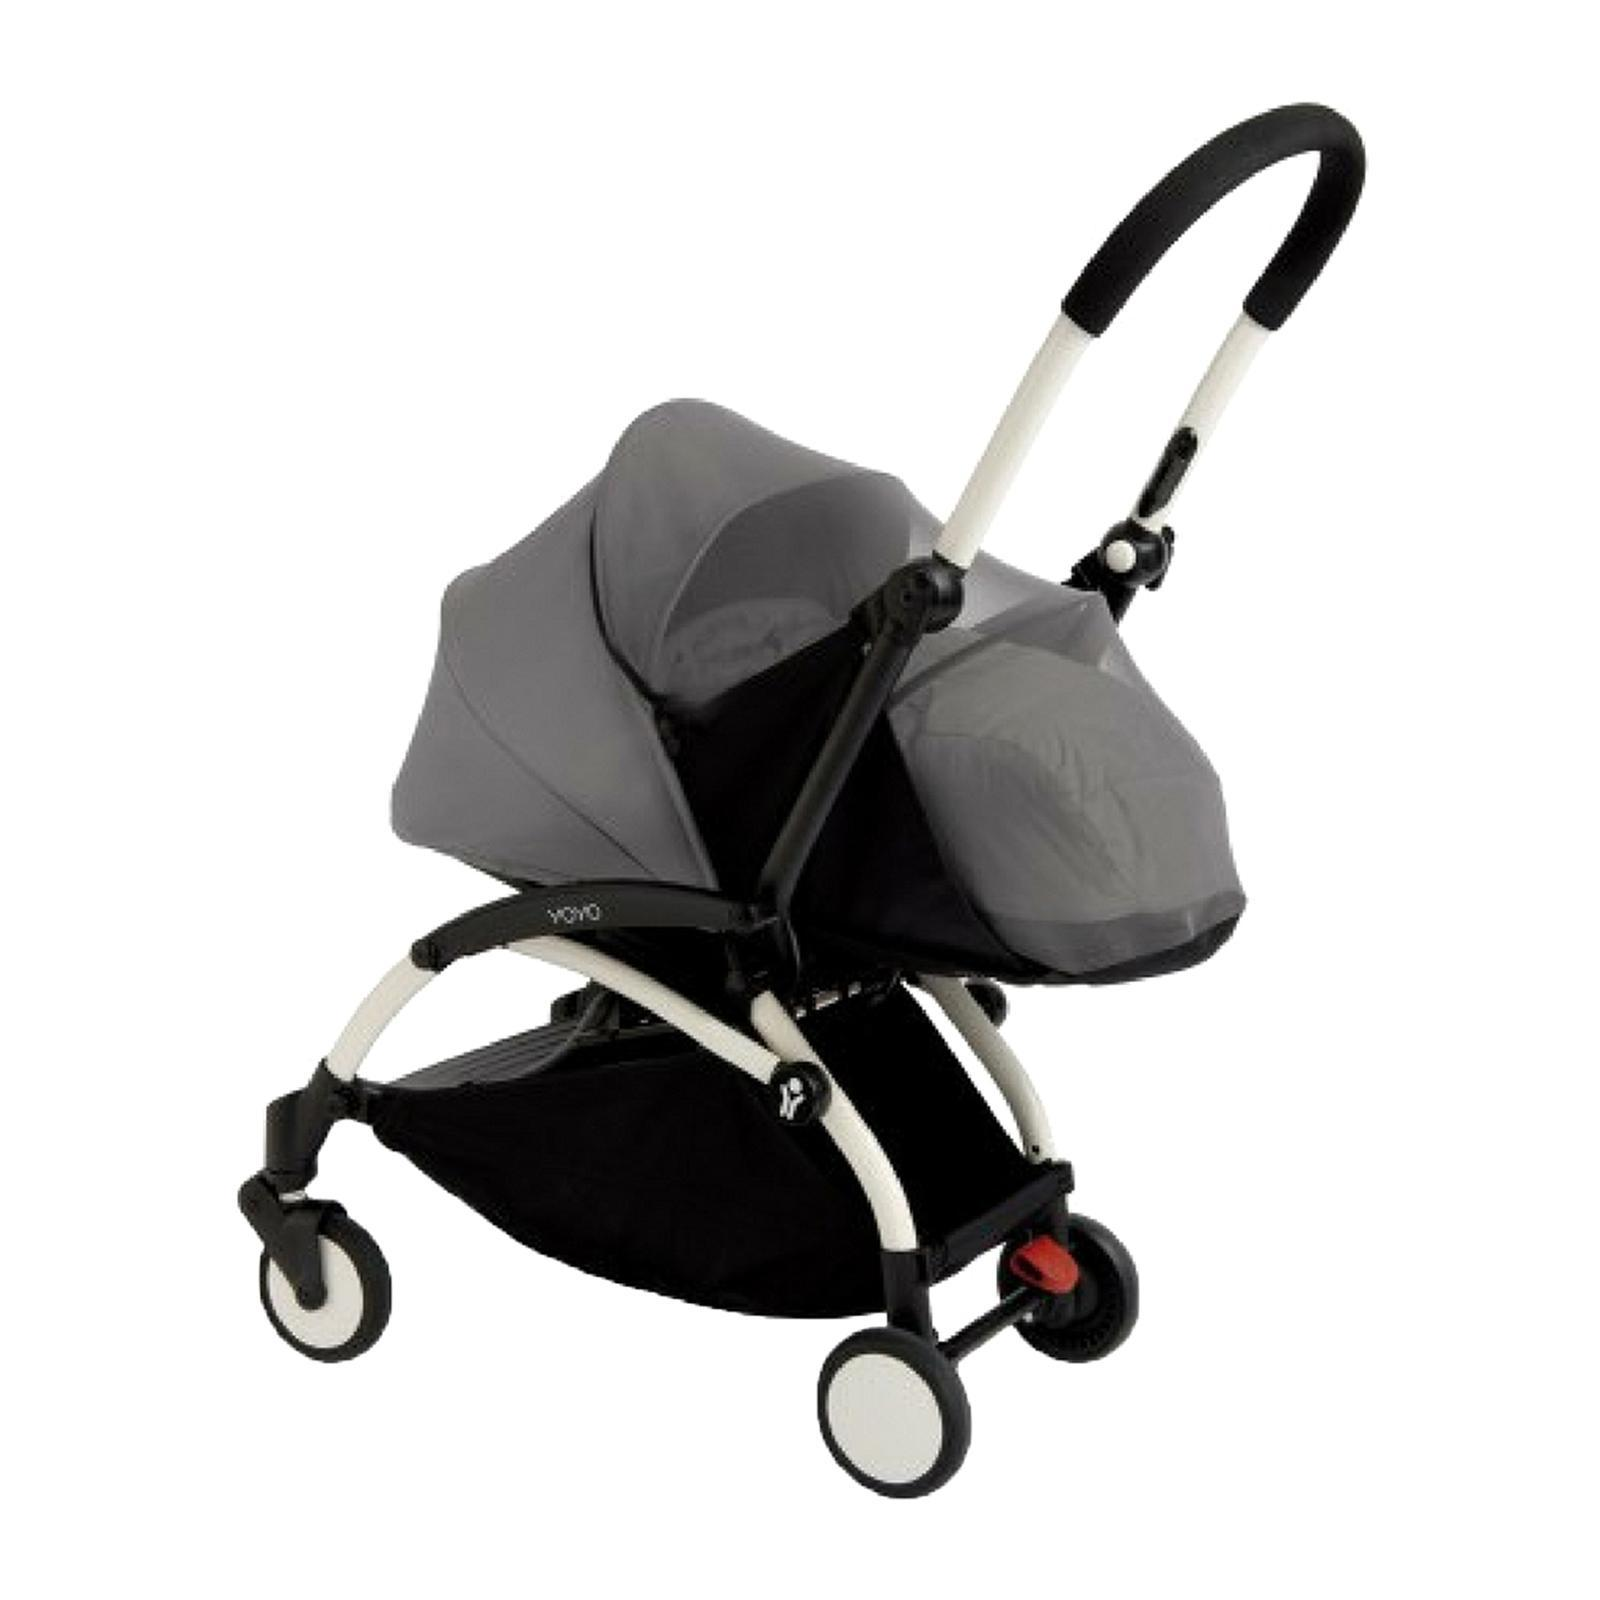 Umbrella Stroller First Years Buy Strollers Umbrella Reversible Twin Lazada